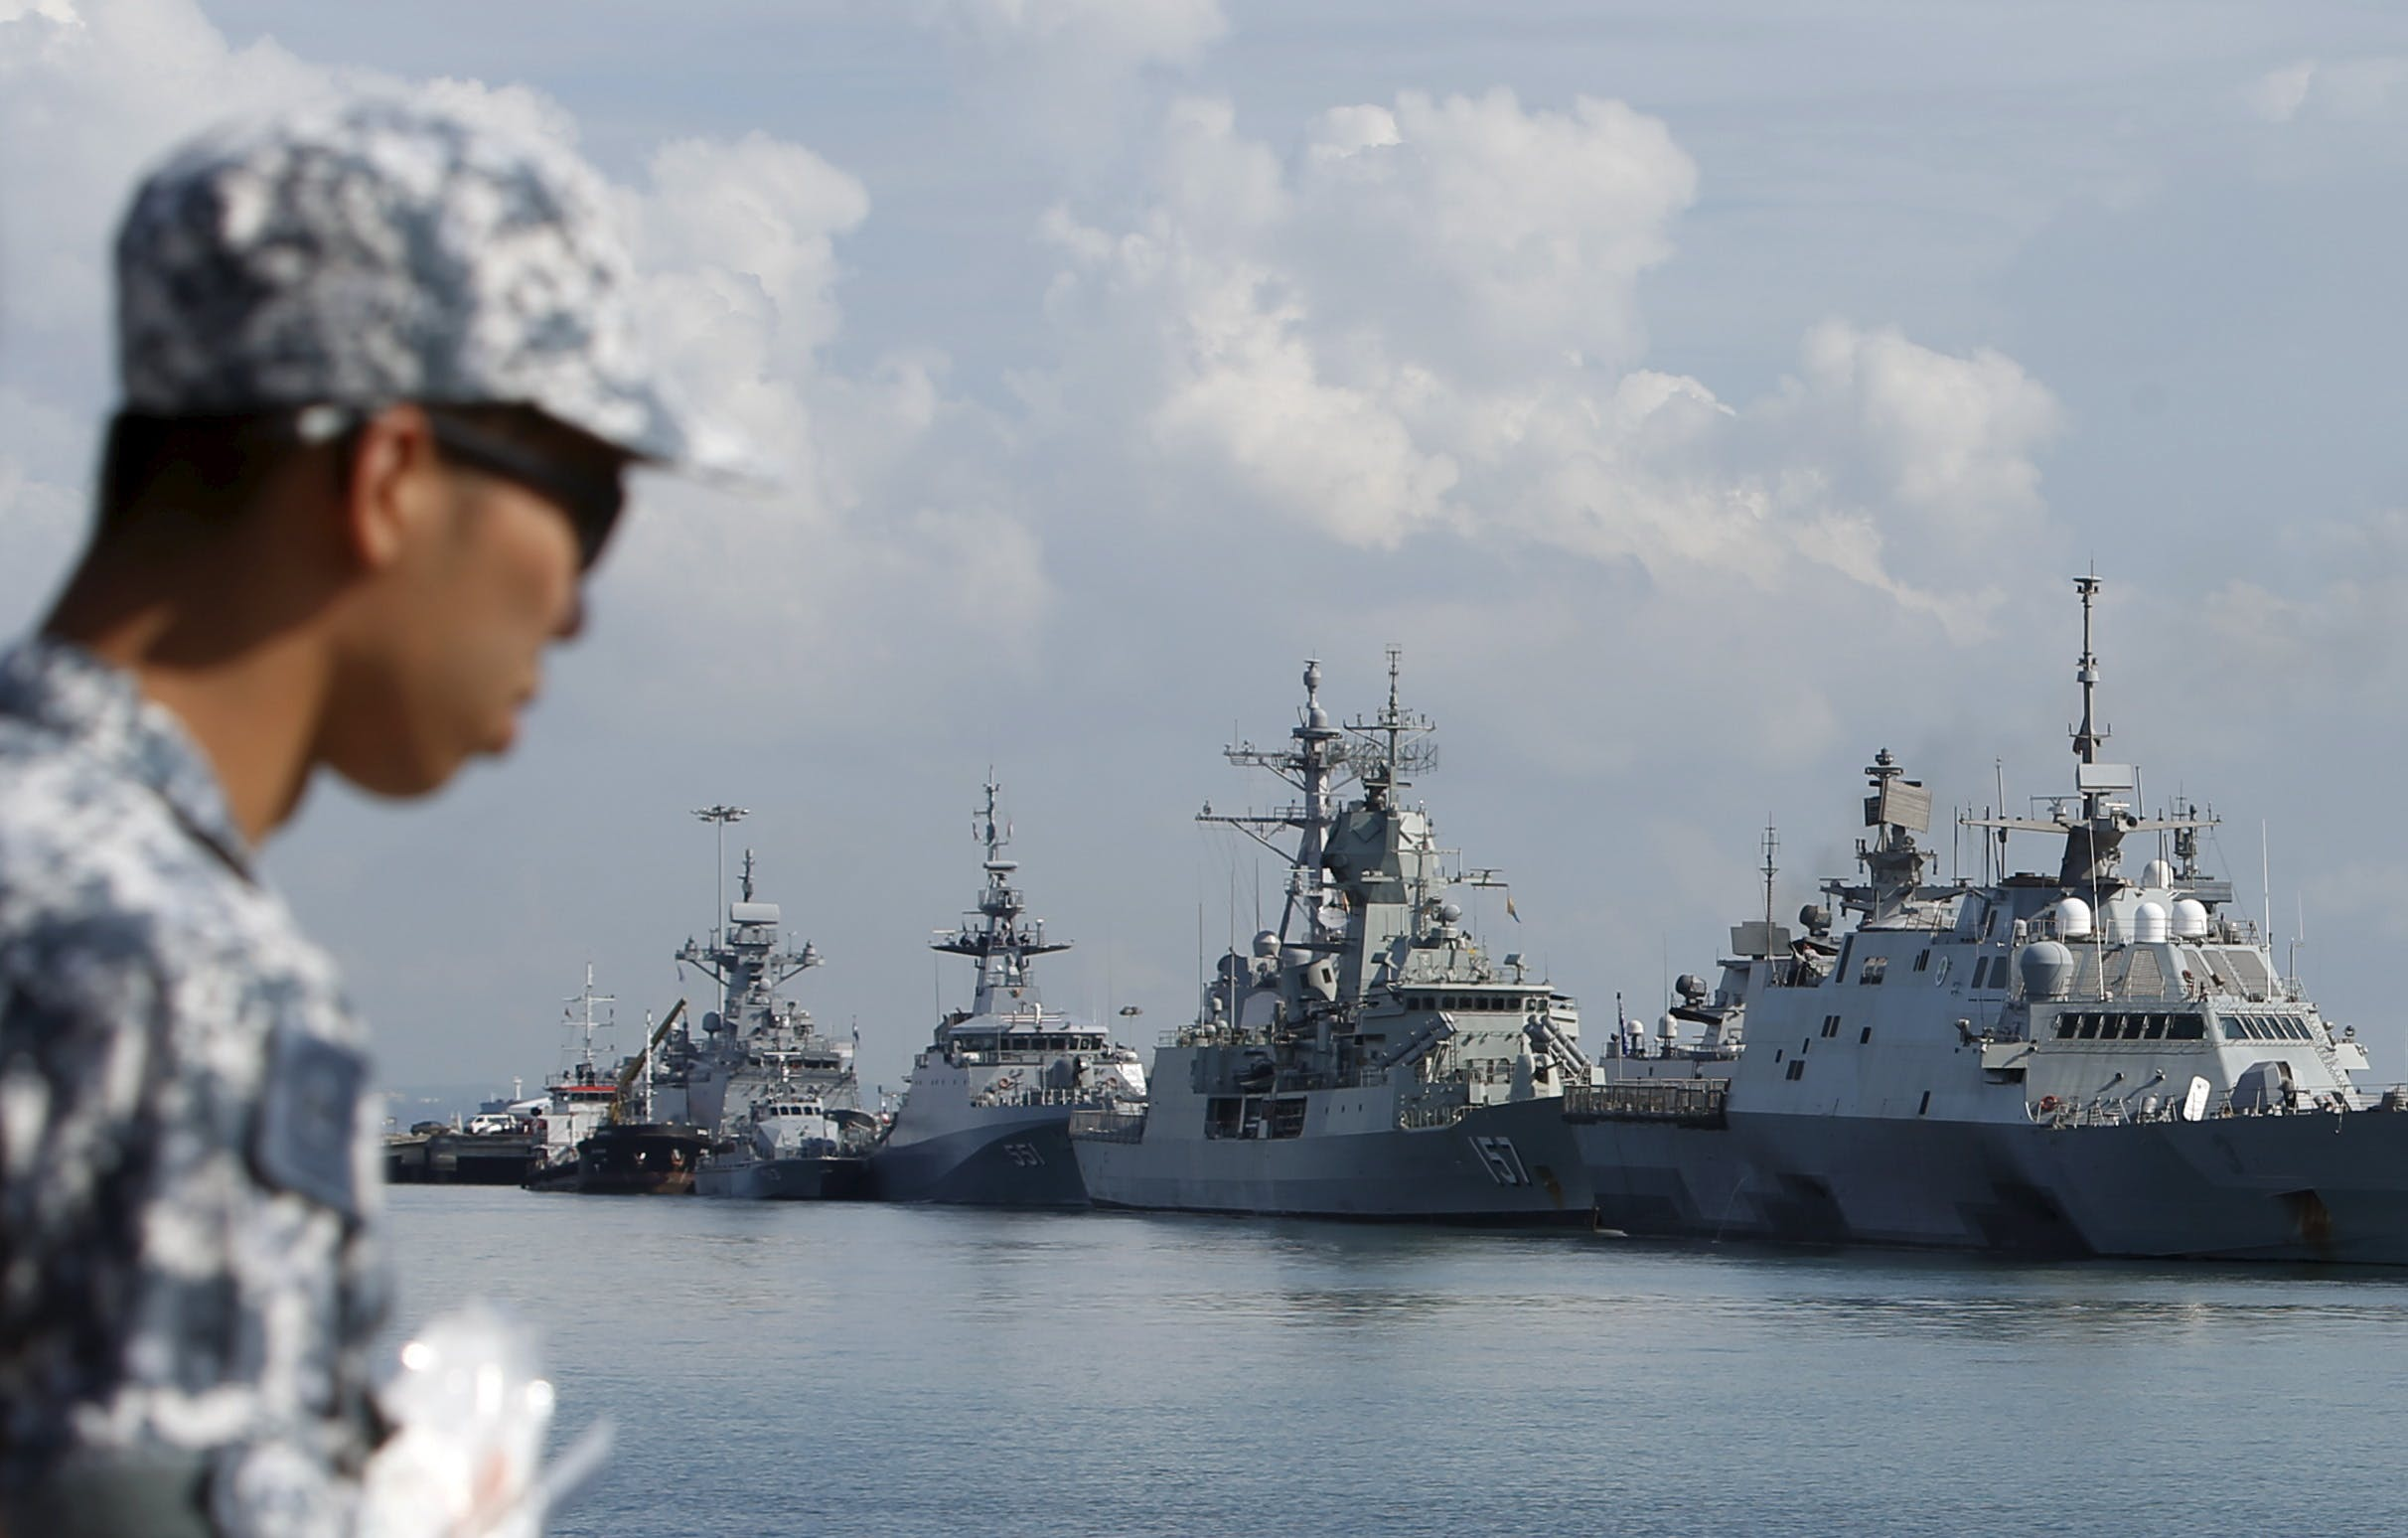 Singapore, Indonesia and Malaysia Cooperate to Disrupt Sea Robbery